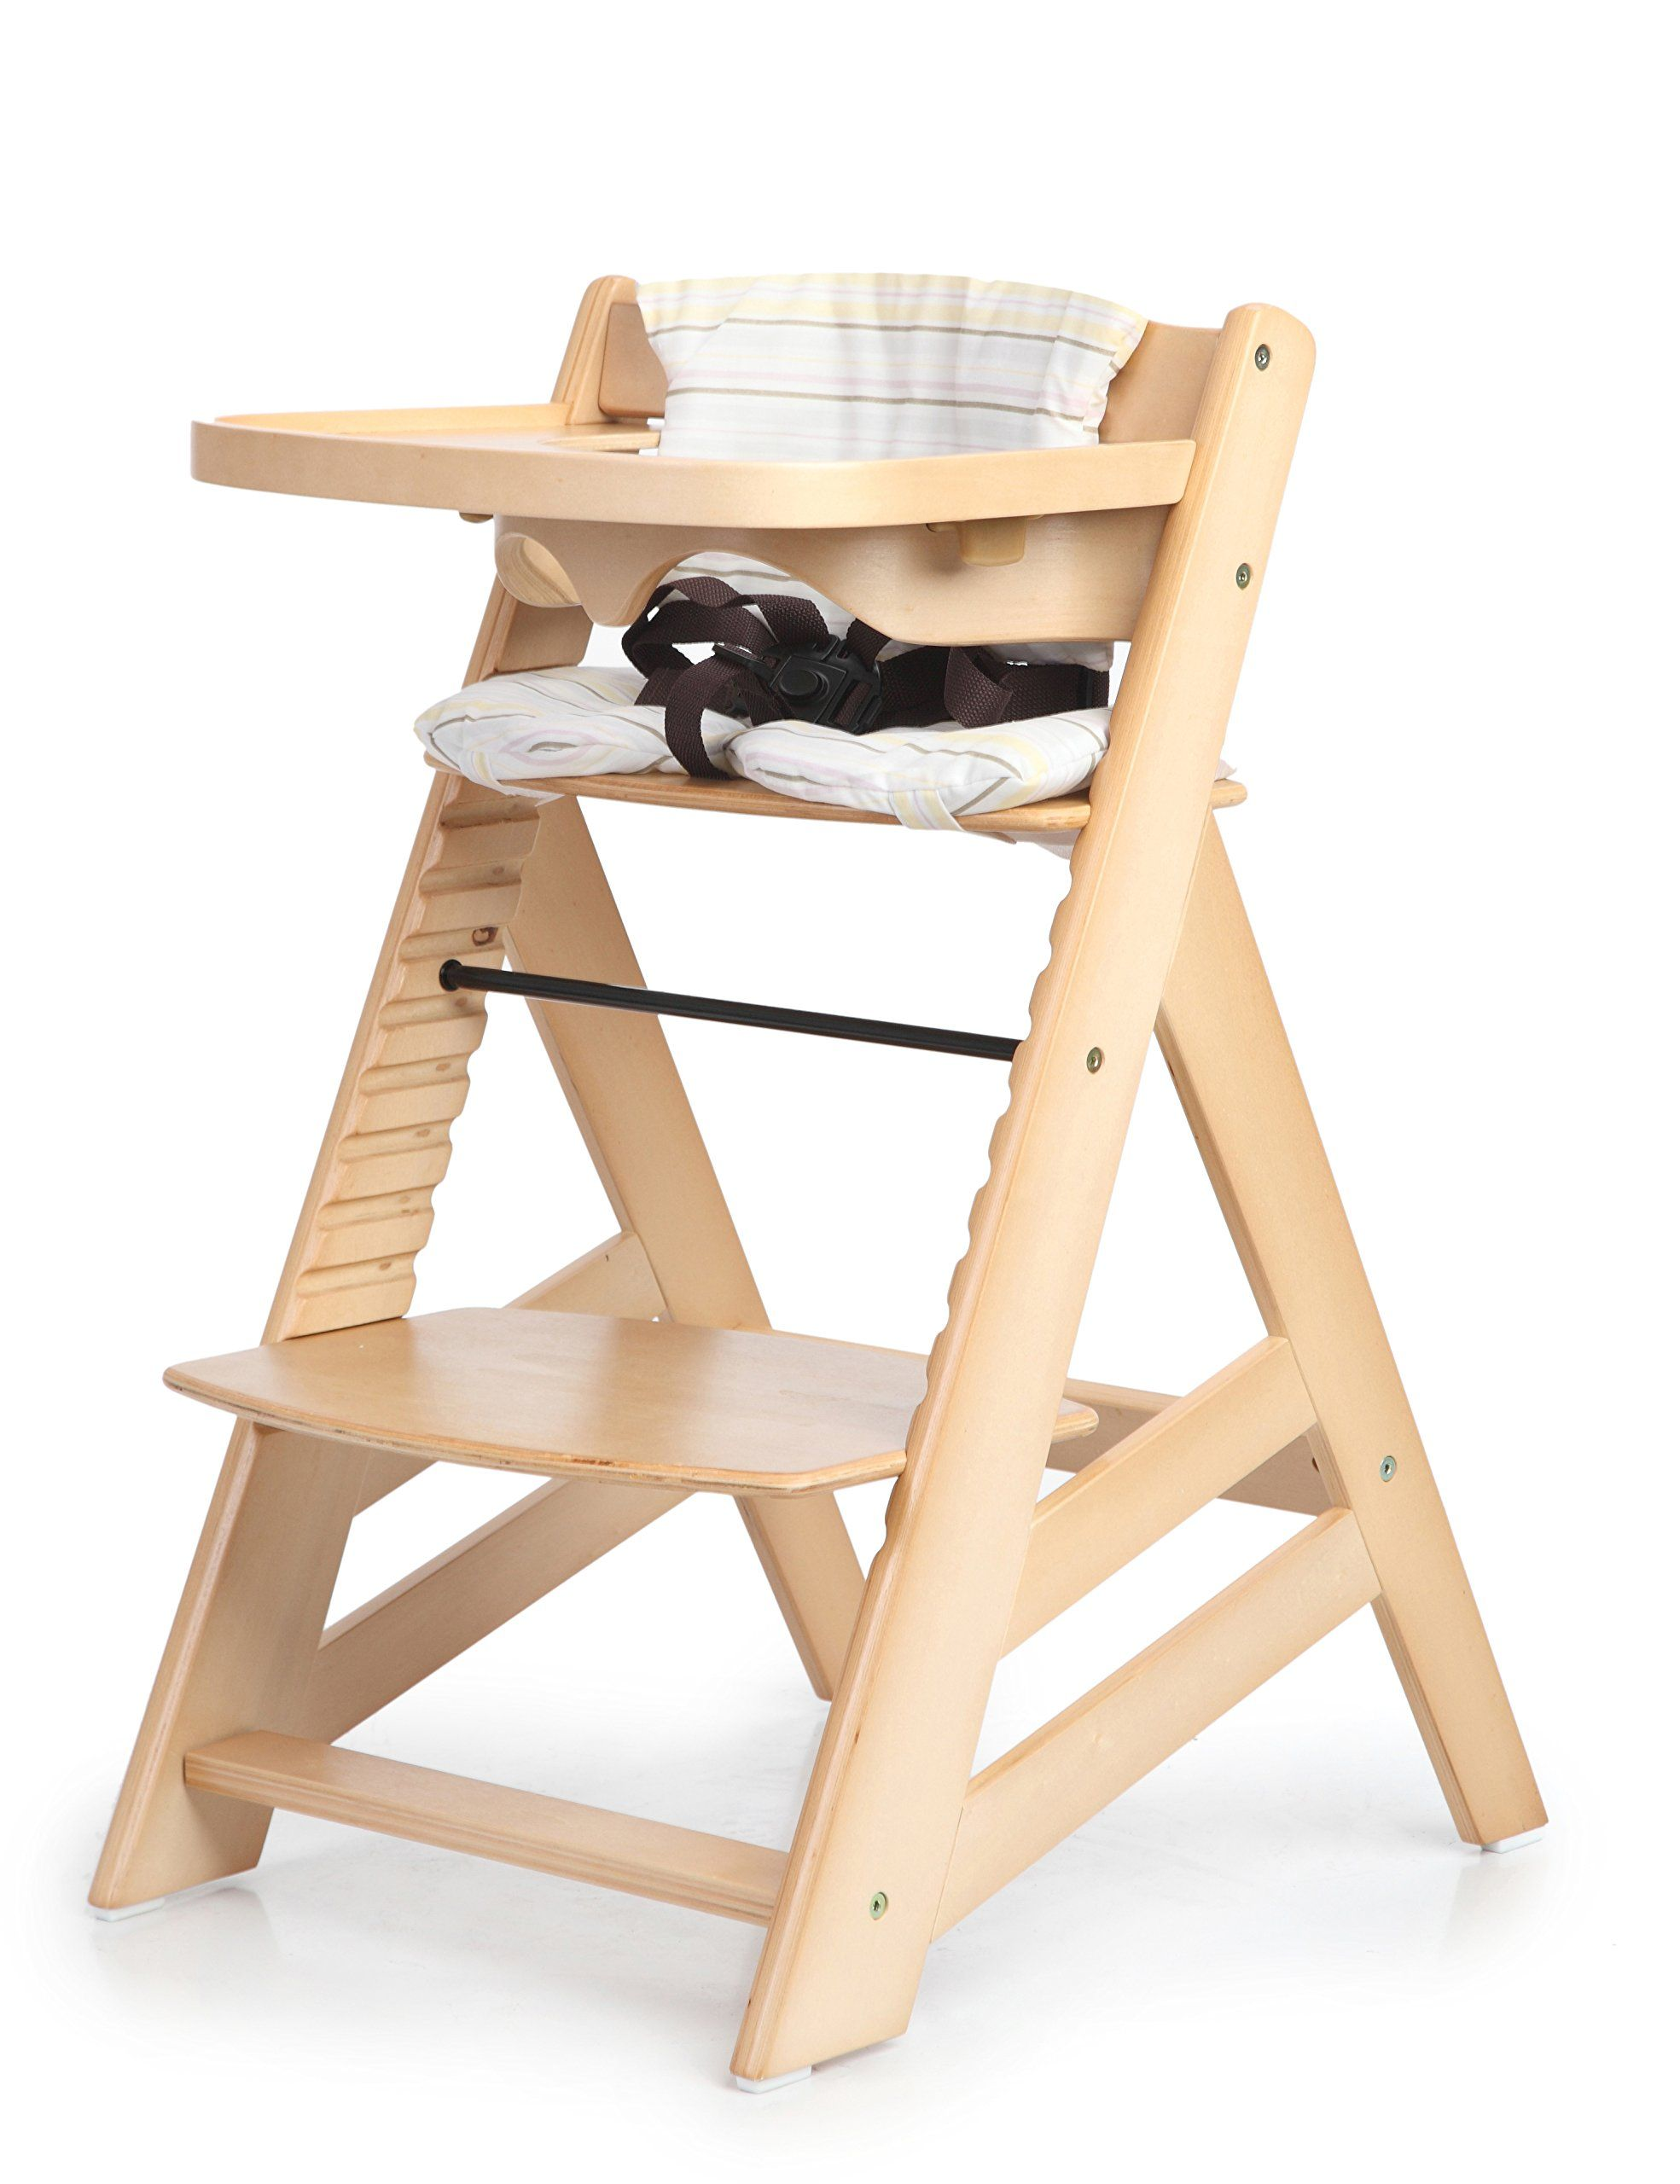 Sepnine Height Adjustable Wooden Highchair Baby High Chair with